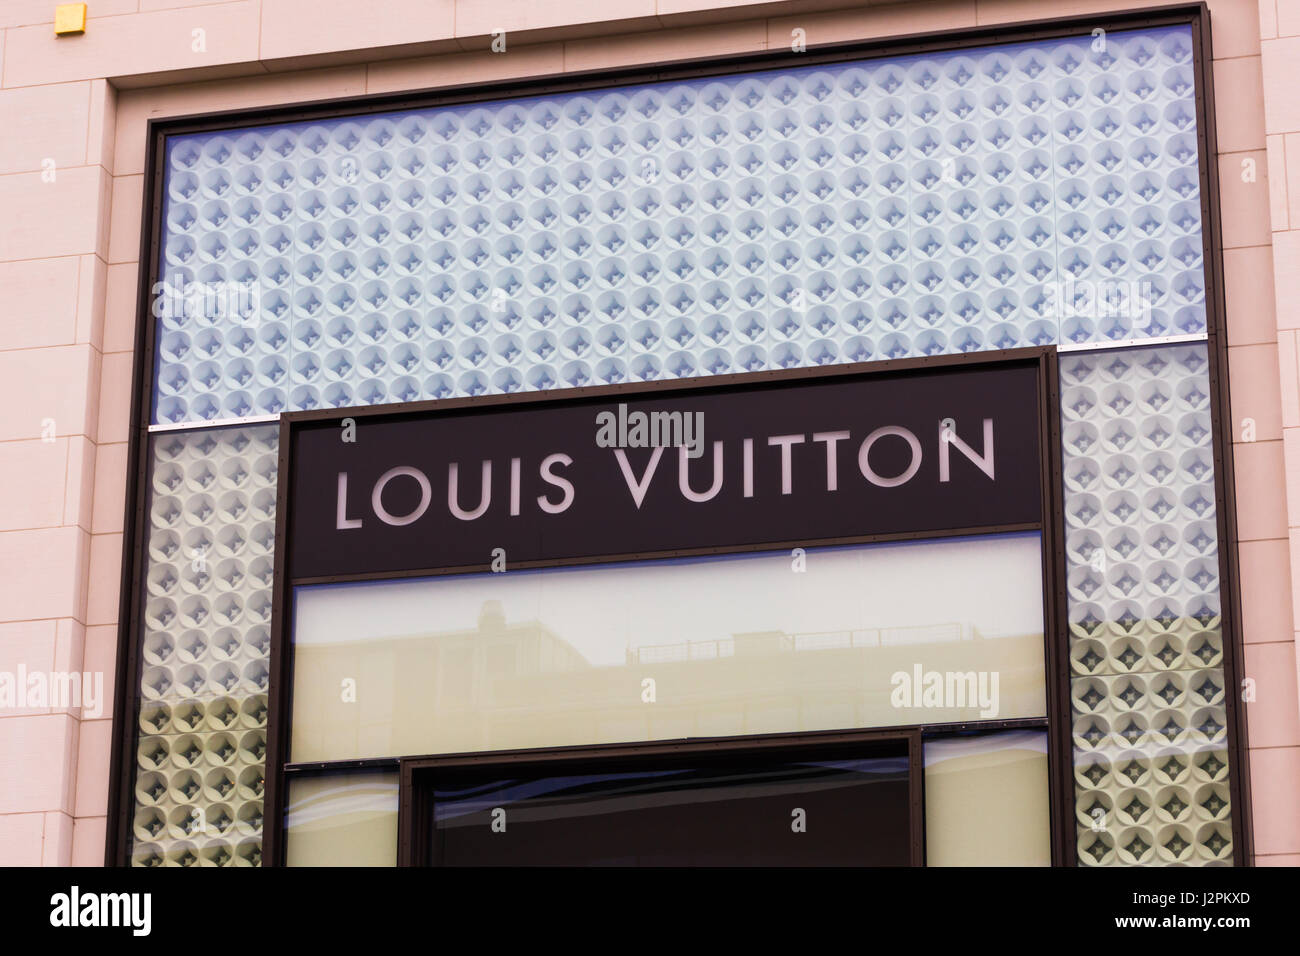 Louis Vuitton Frankfurt Stockfotos Louis Vuitton Frankfurt Bilder